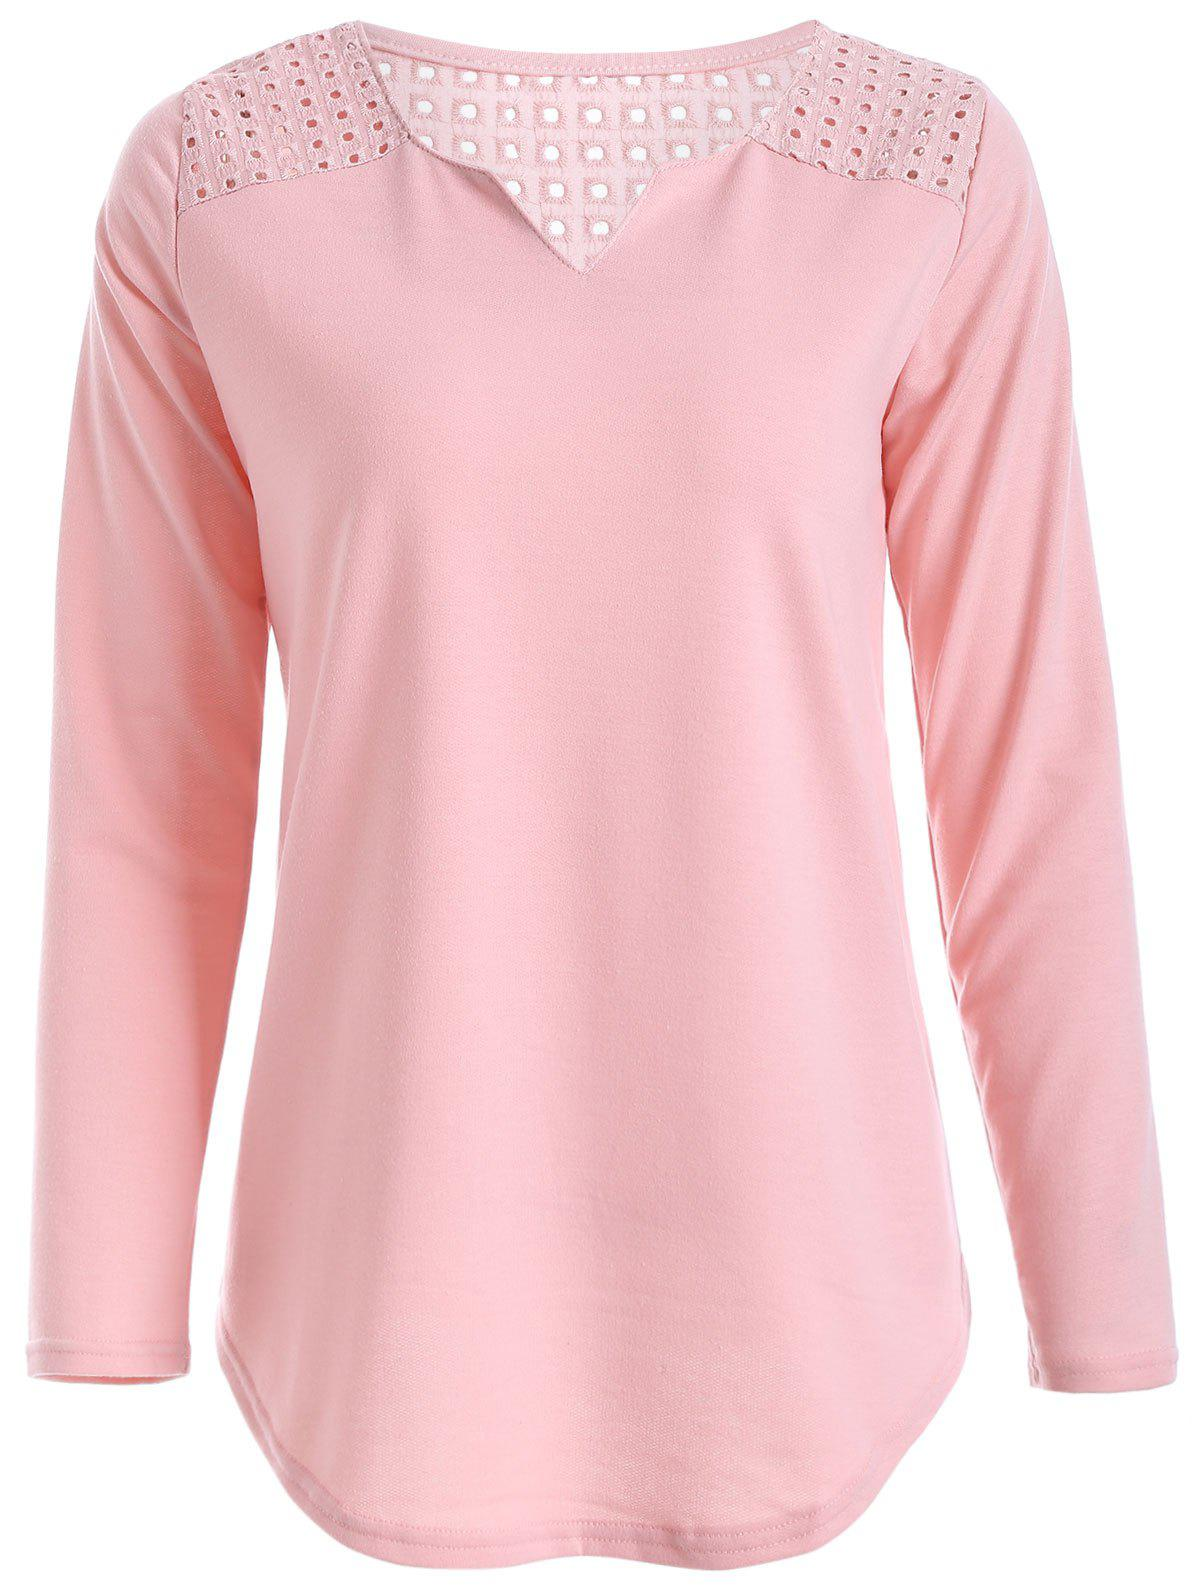 Retour Couper V Neck Out Tee - Rose Pâle L